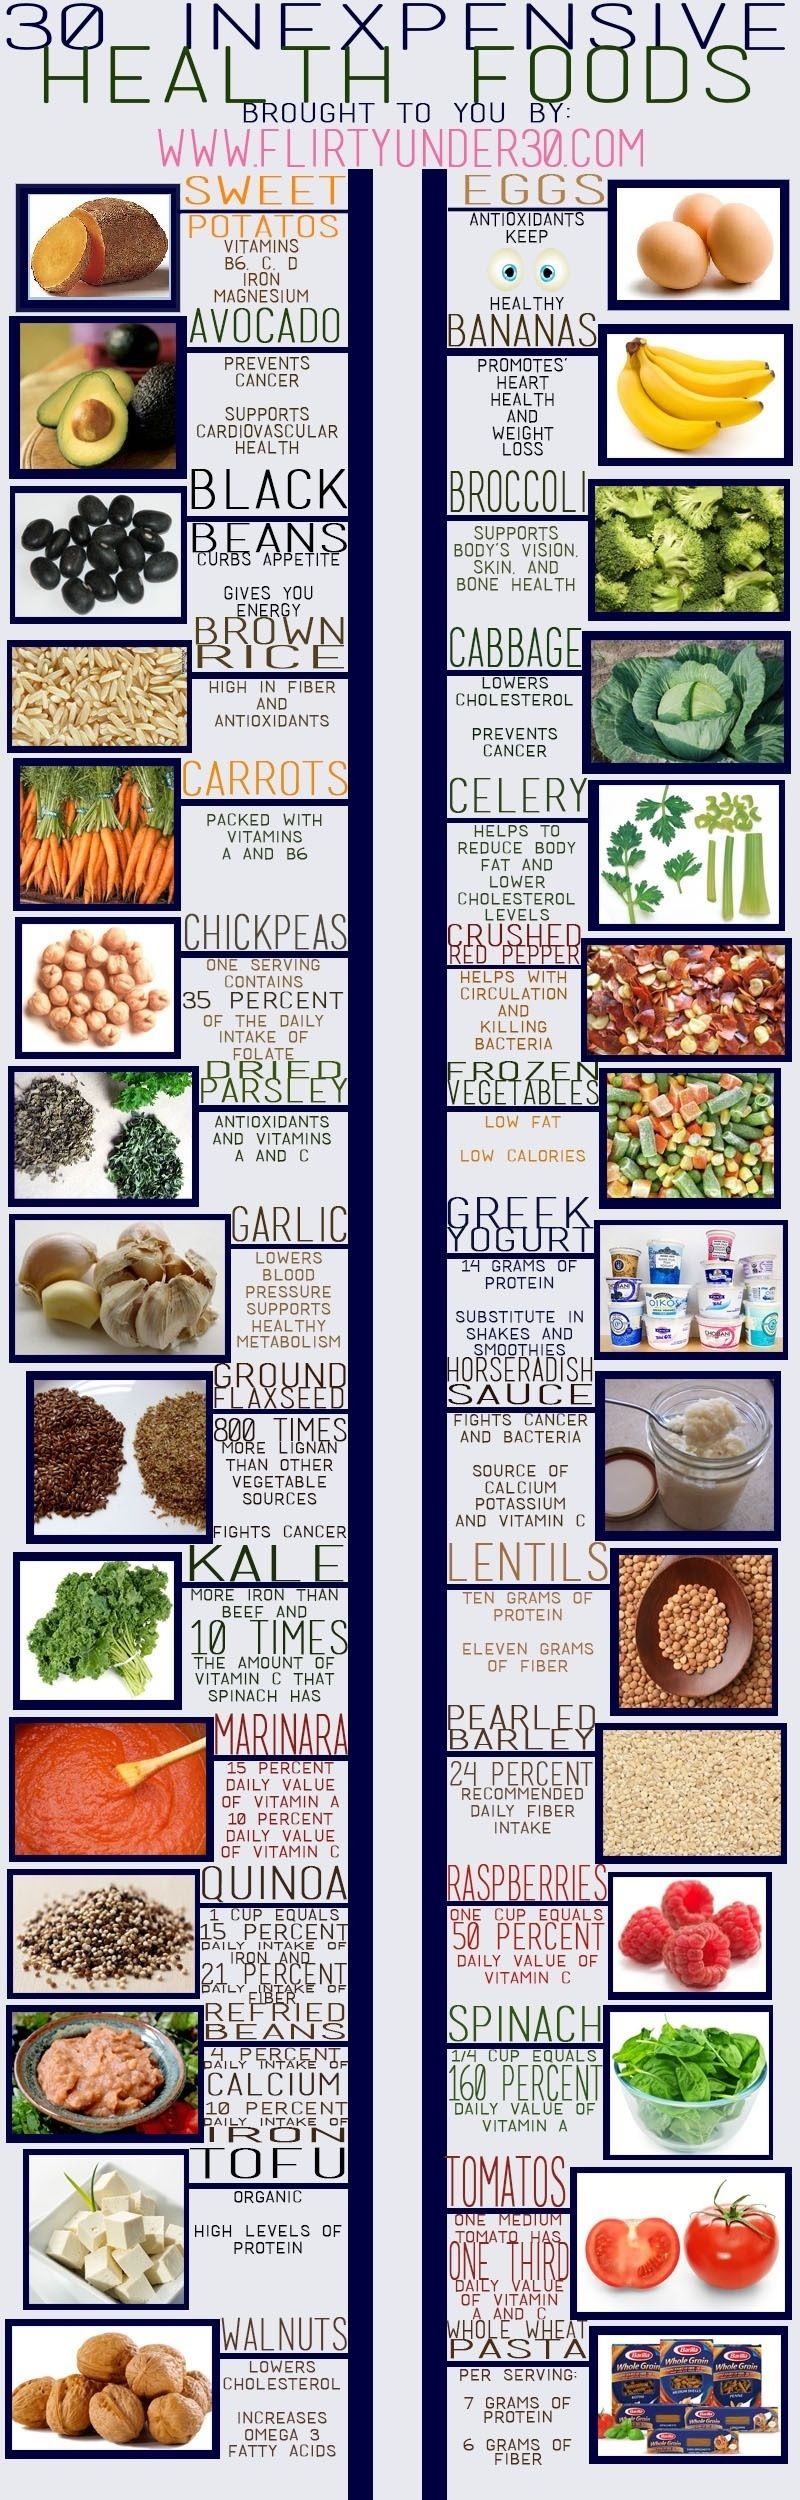 Foods That Are Healthy and Inexpensive - Infographic